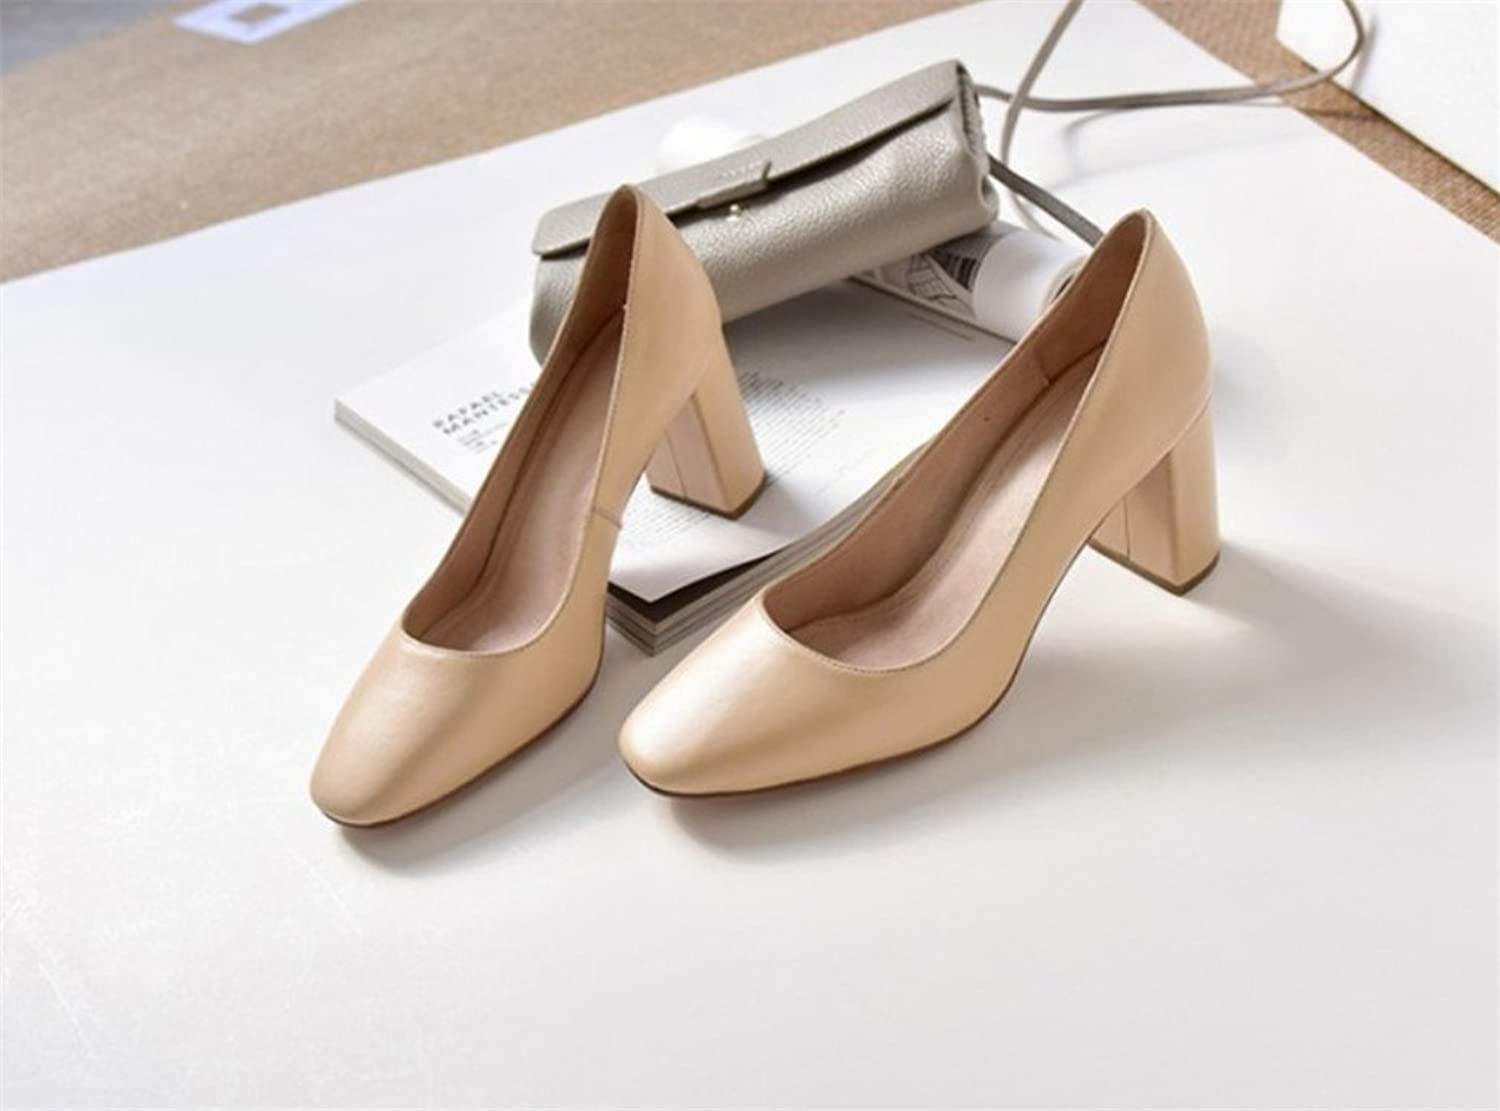 High Heels,Sandals Women Bride Pumps Wedding Court shoes Dress Dating Office Party Blink Pointed shoes,Beige,EU36